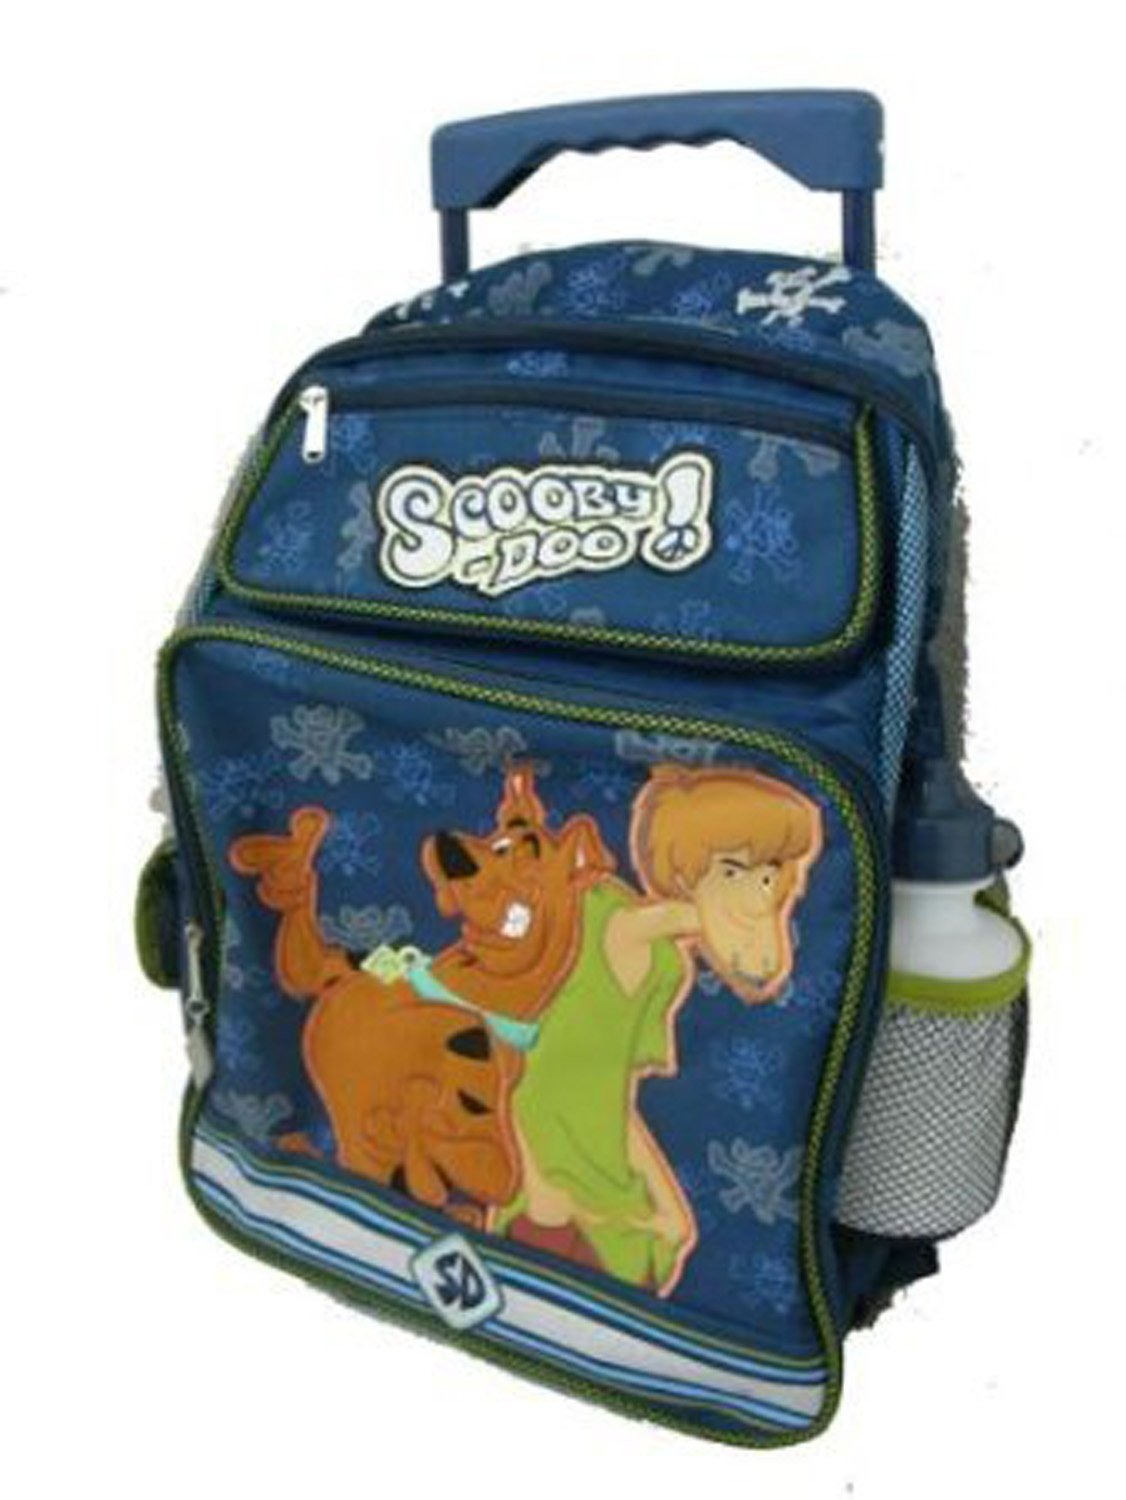 Large Rolling Backpack - Scooby Doo Shaggy New School Book Bag 233754   B0015PFKN6